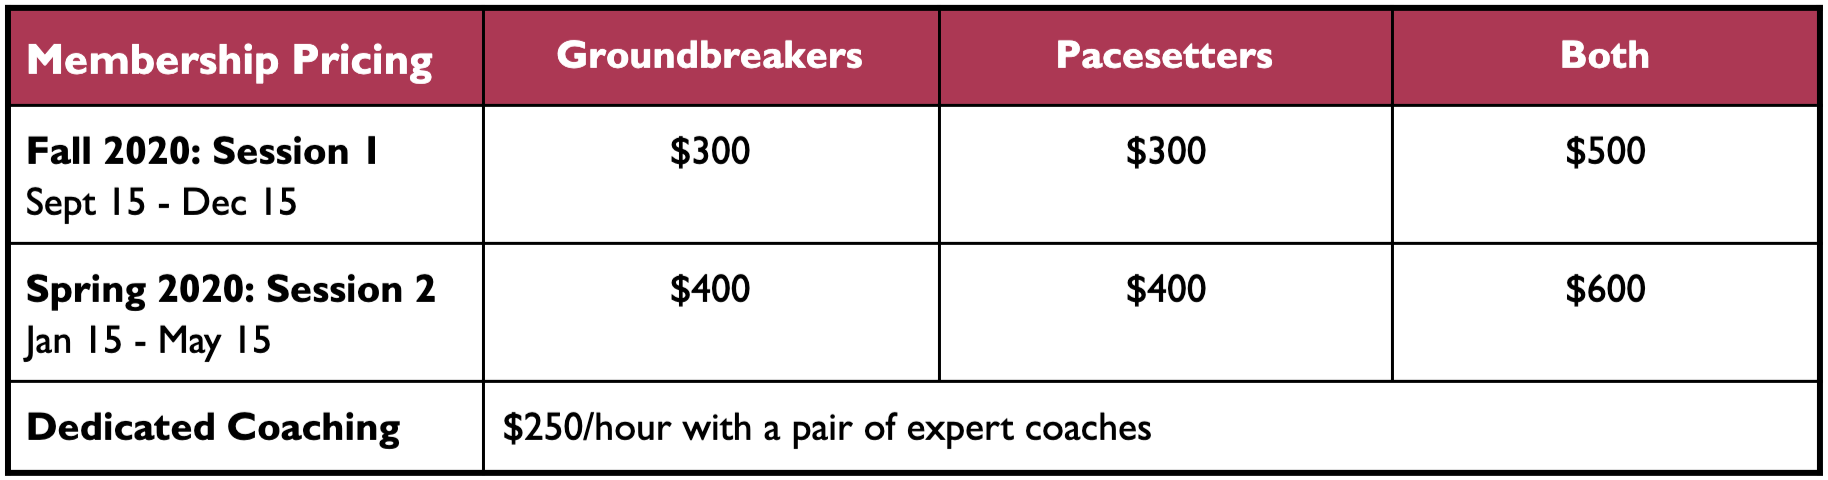 The membership prices below are per person and do not include transaction fees.